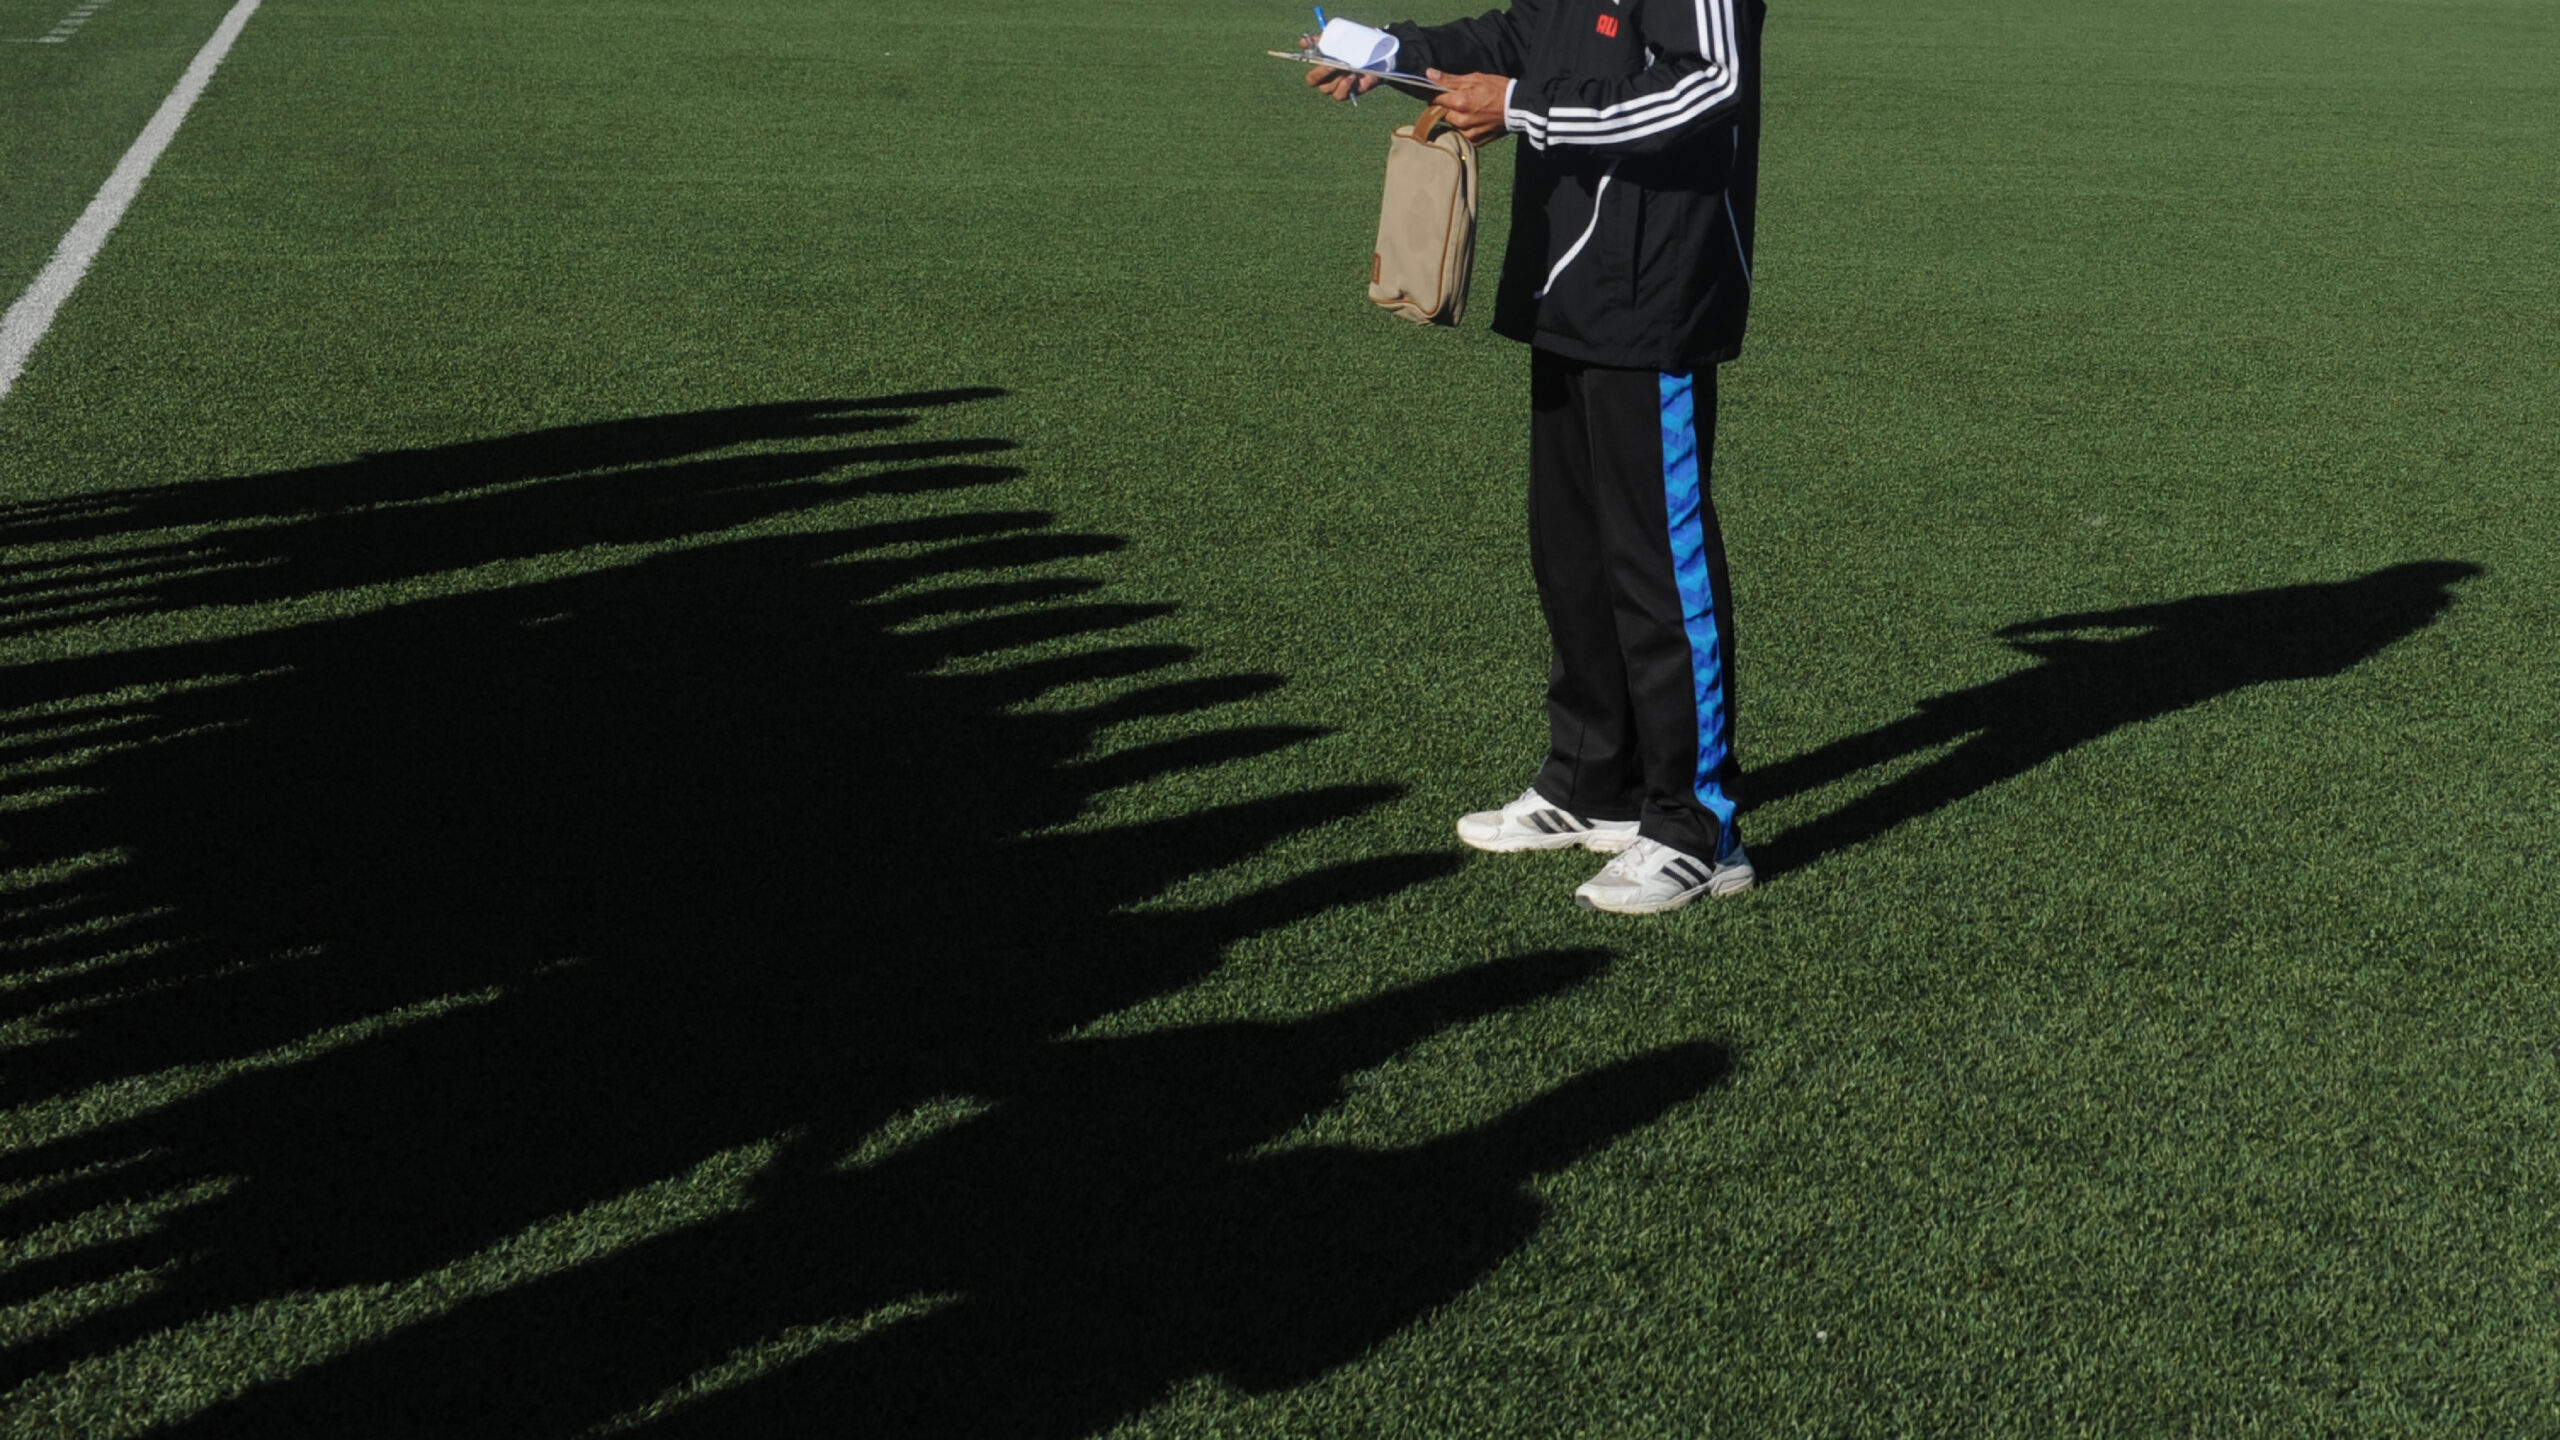 Shadows of Afghan female football players fall as their coach gives instructions prior to a football match in Kabul on November 9, 2013. Twelve teams played in Kabul with players to be selected for the Afghanistan National Women Football Team. AFP PHOTO/ Farshad USYAN (Photo credit should read FARSHAD USYAN/AFP via Getty Images)